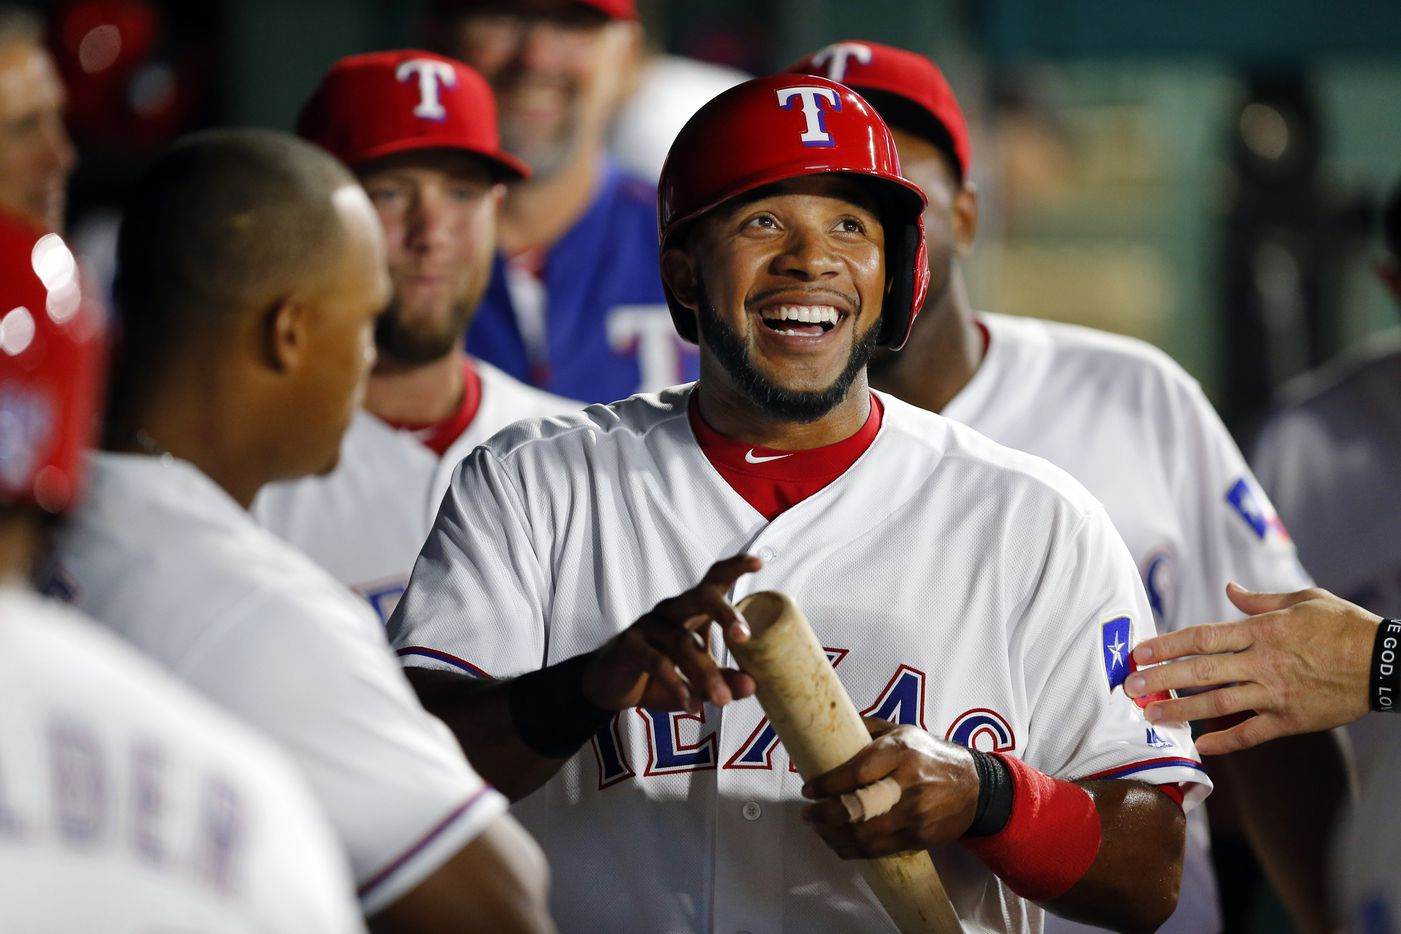 Texas Rangers shortstop Elvis Andrus (1) smiles big as he is congratulated by teammates after scoring on a double by Texas Rangers Brett Nicholas in the sixth inning at the Globe Life Park in Arlington, Tuesday, April 19, 2016. (Tom Fox/The Dallas Morning News)